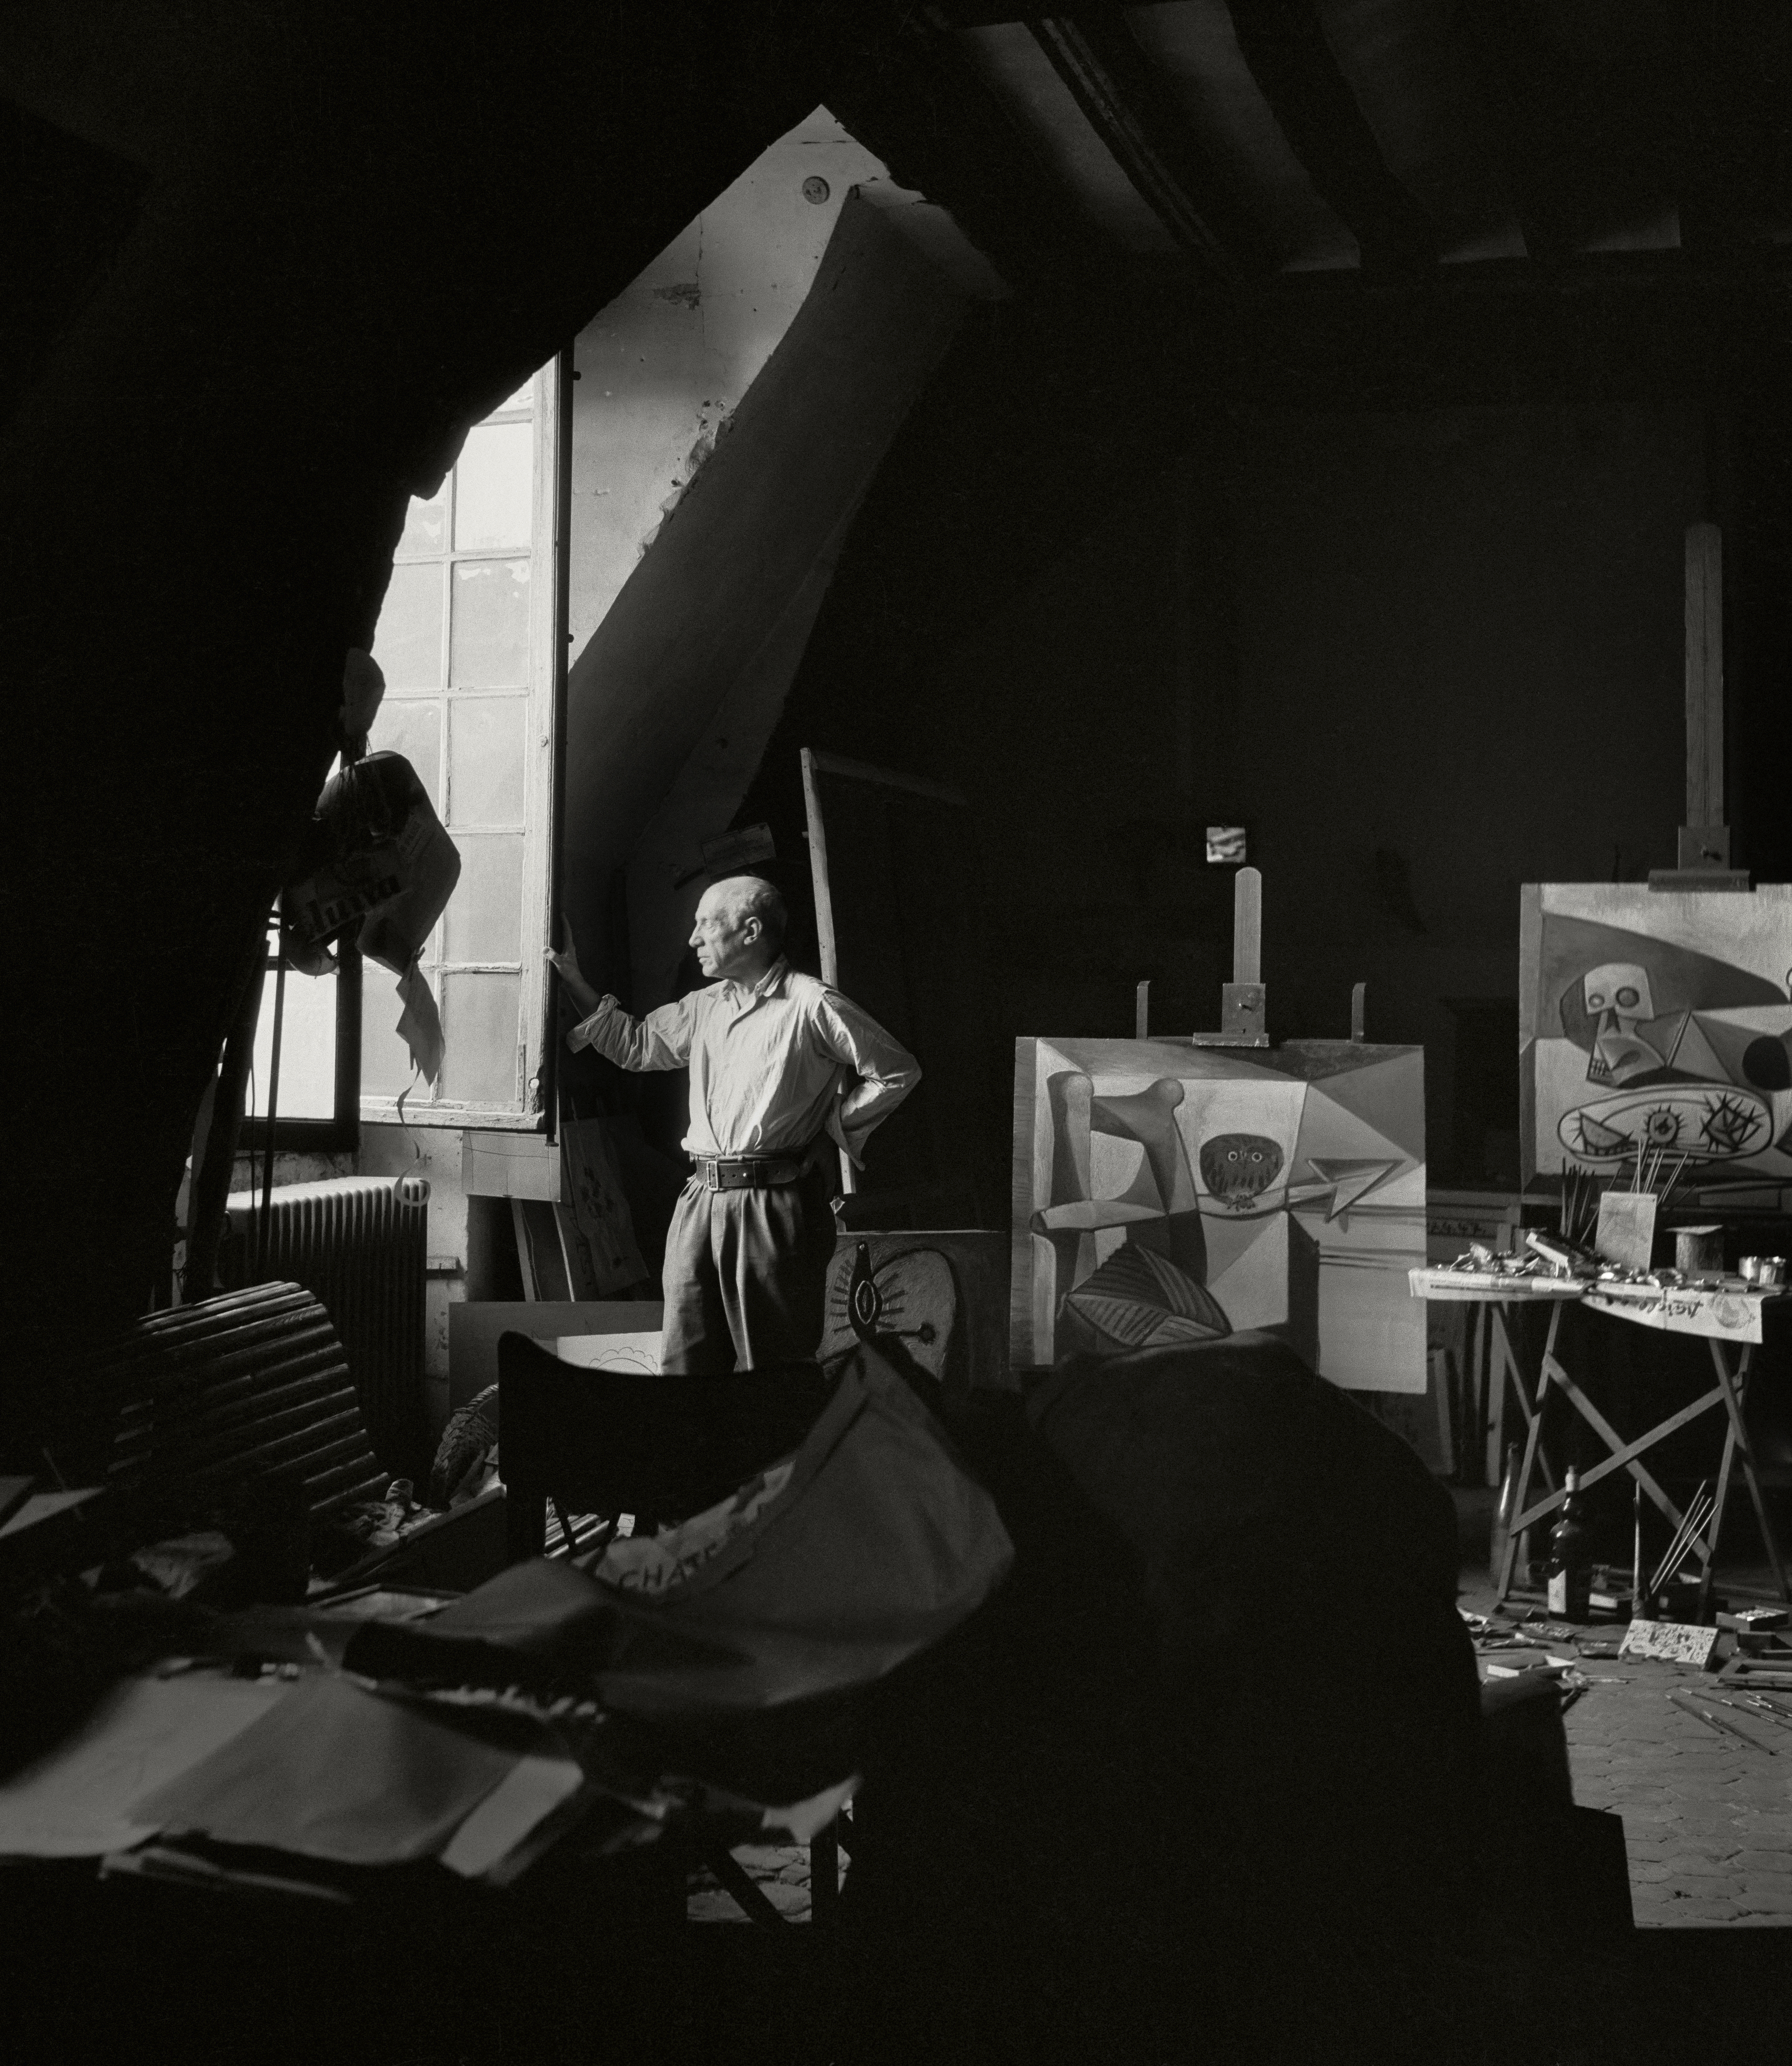 Pablo Picasso in the evening in his studio in Paris 1948 by Herbert List